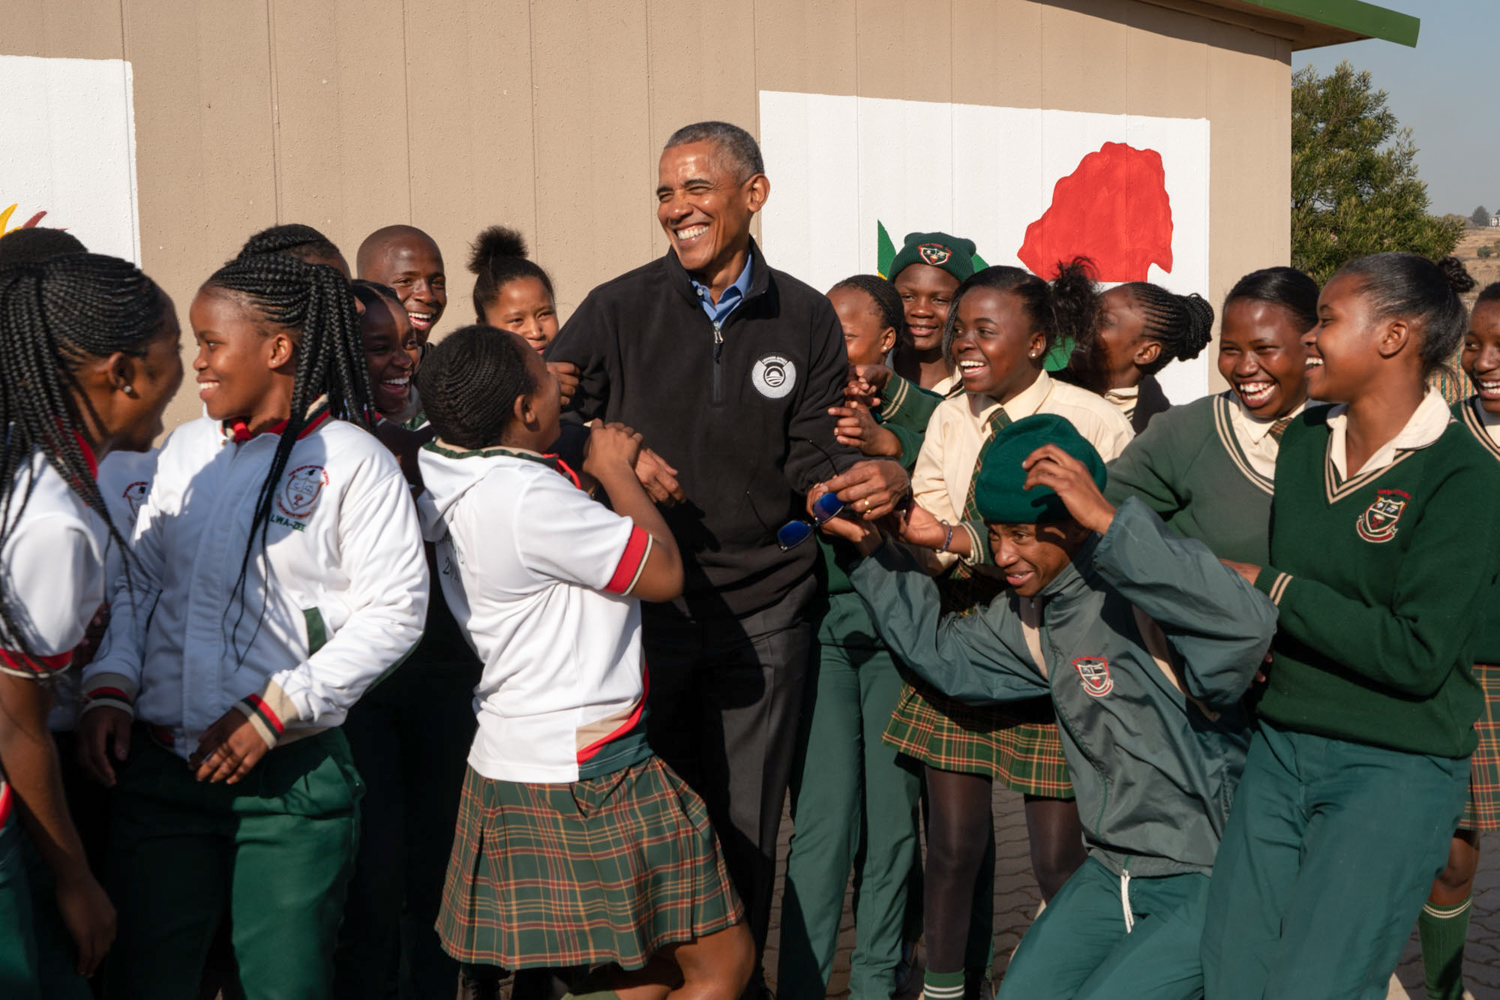 President Obama plays with school children during a service project in Johannesburg.